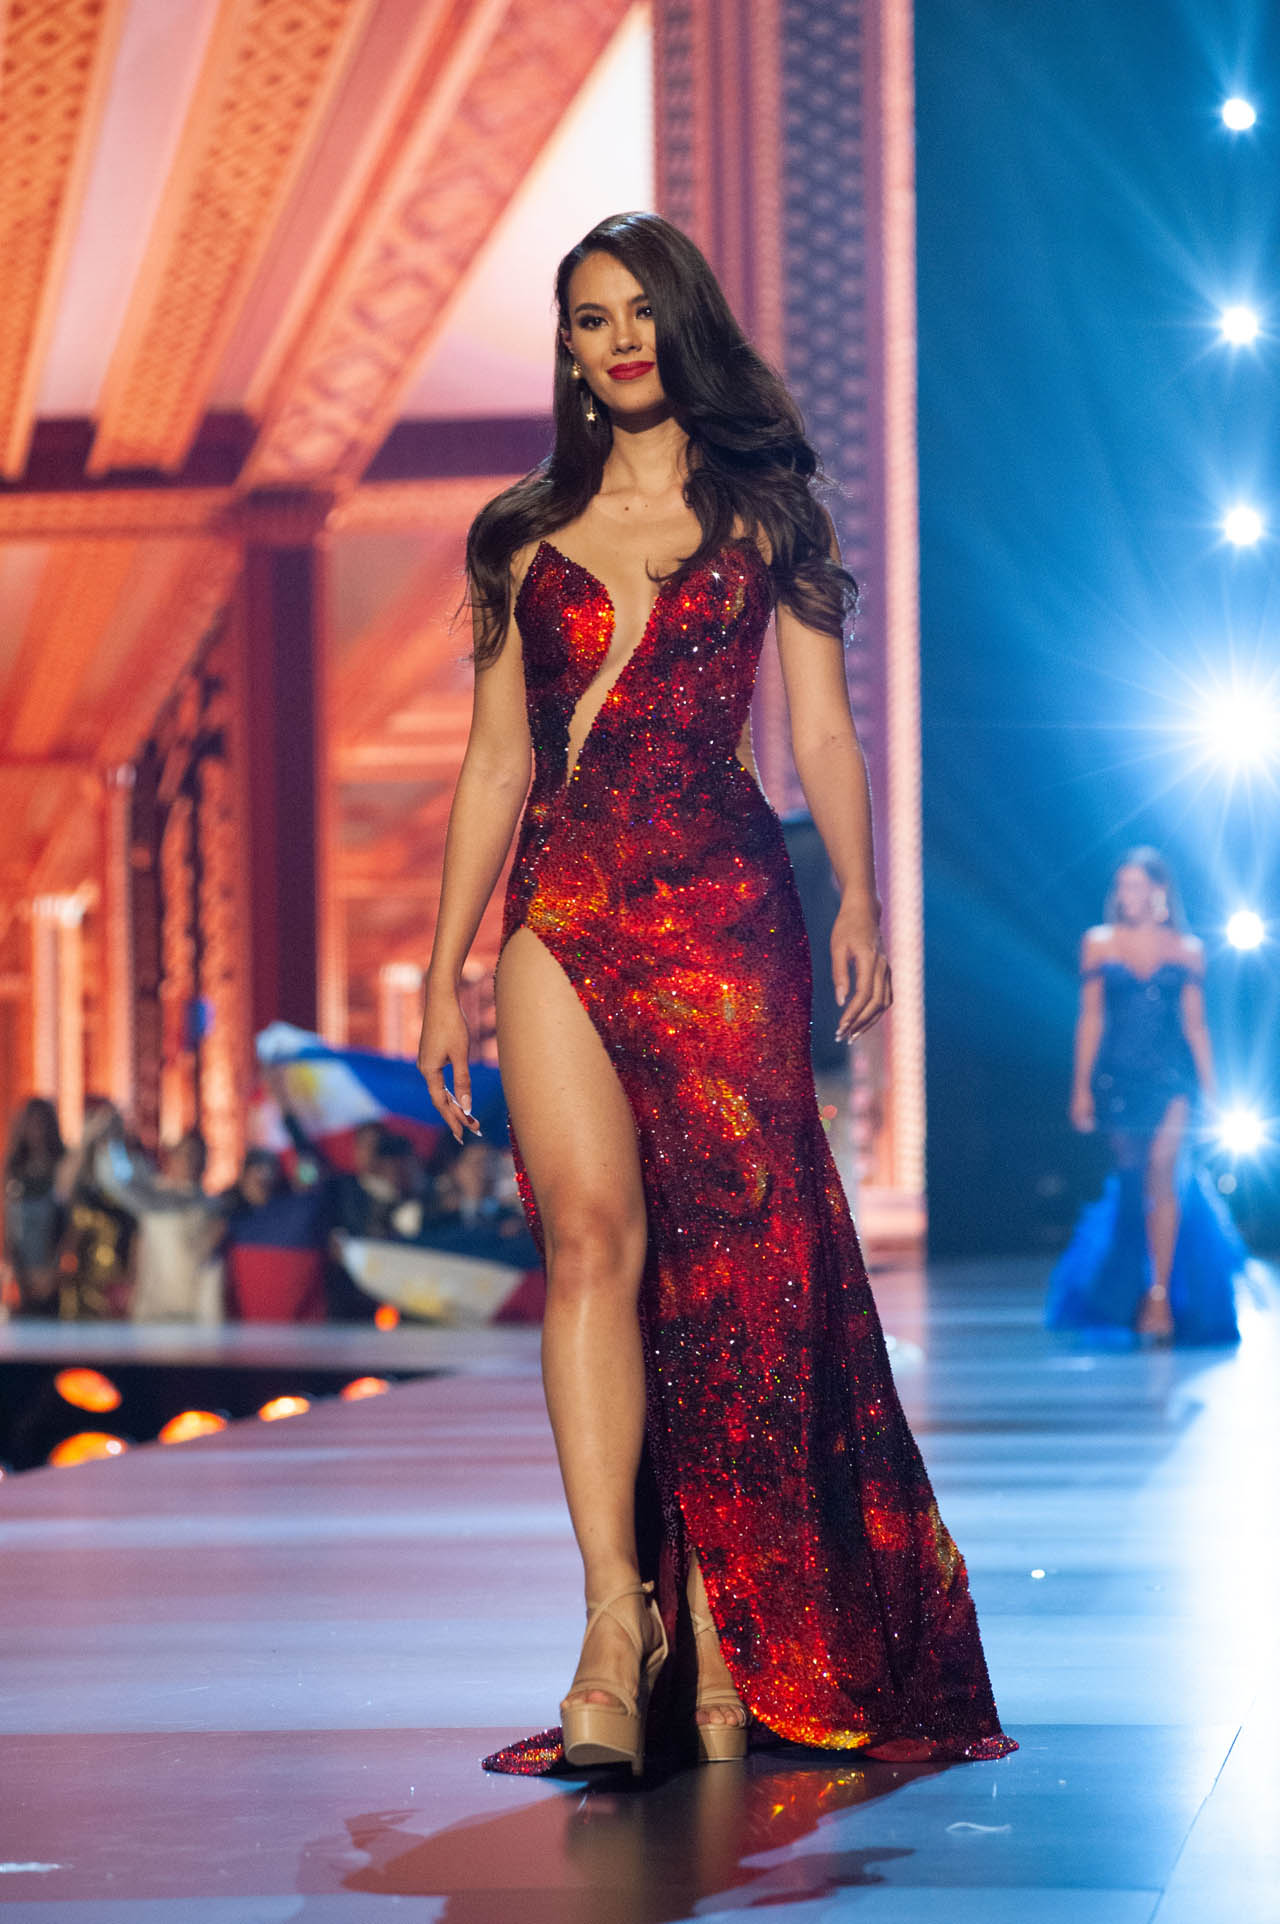 Runaway winner: How Catriona Gray won Miss Universe 2018